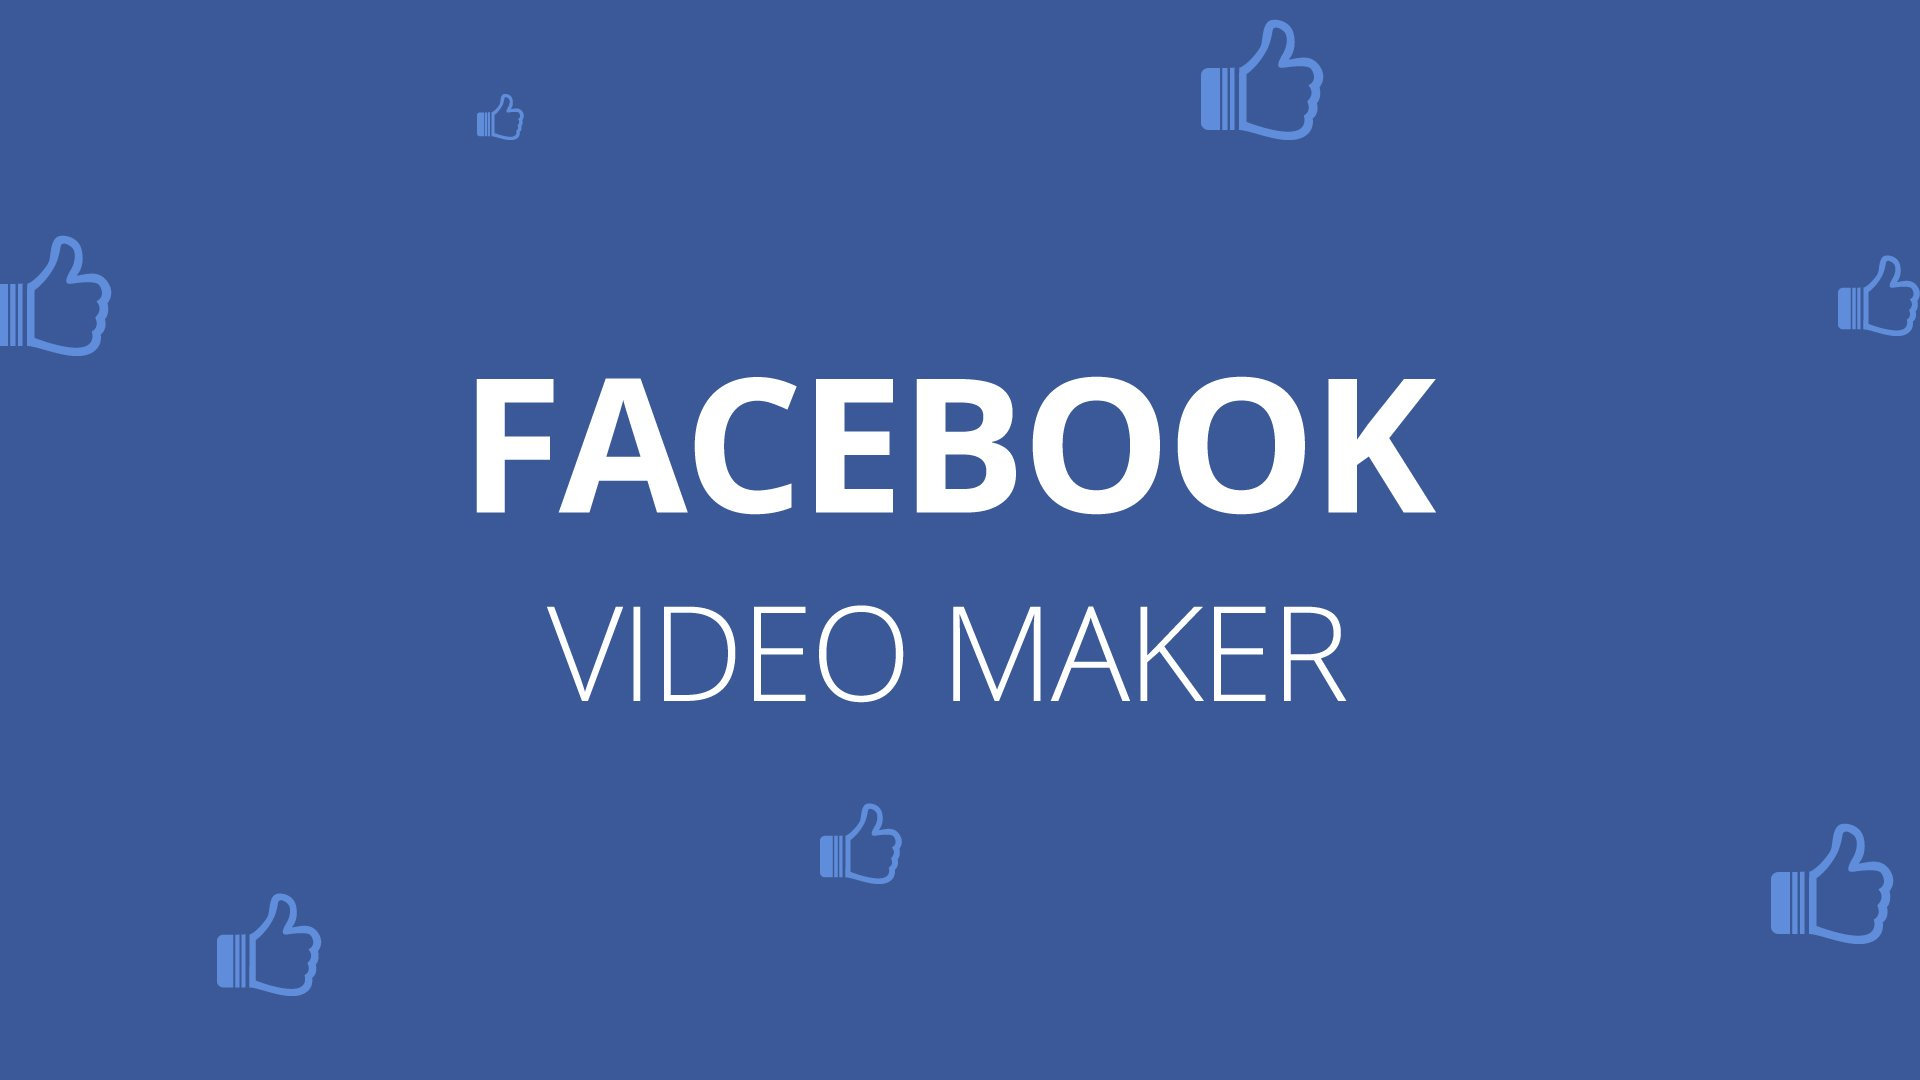 scaricare video facebook da pc